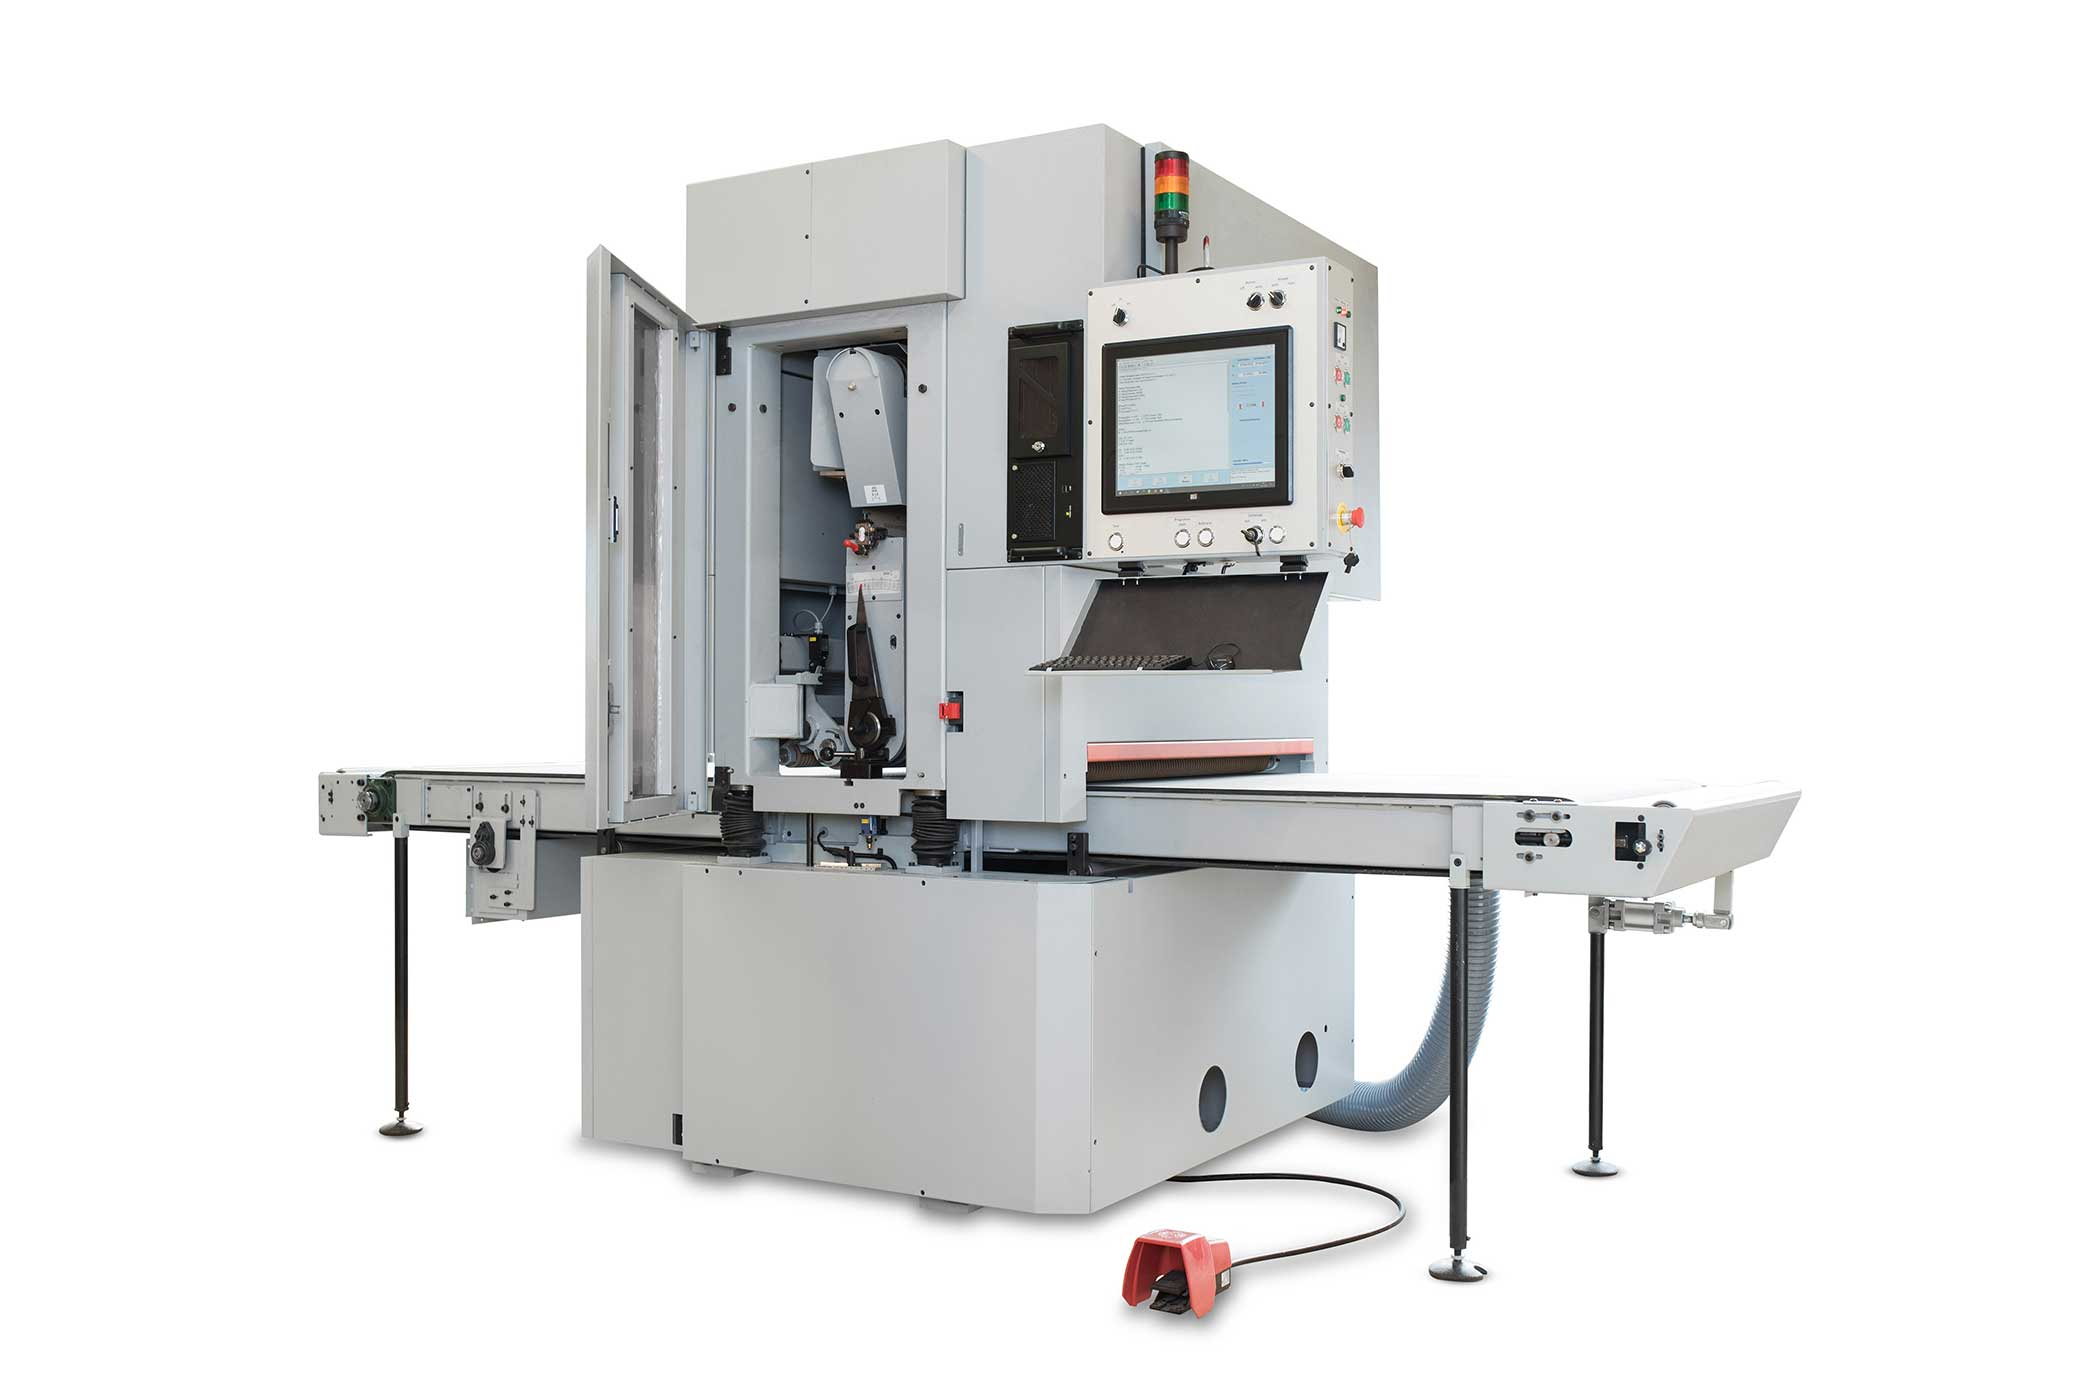 CNC Wide Belt Sander for Contouring